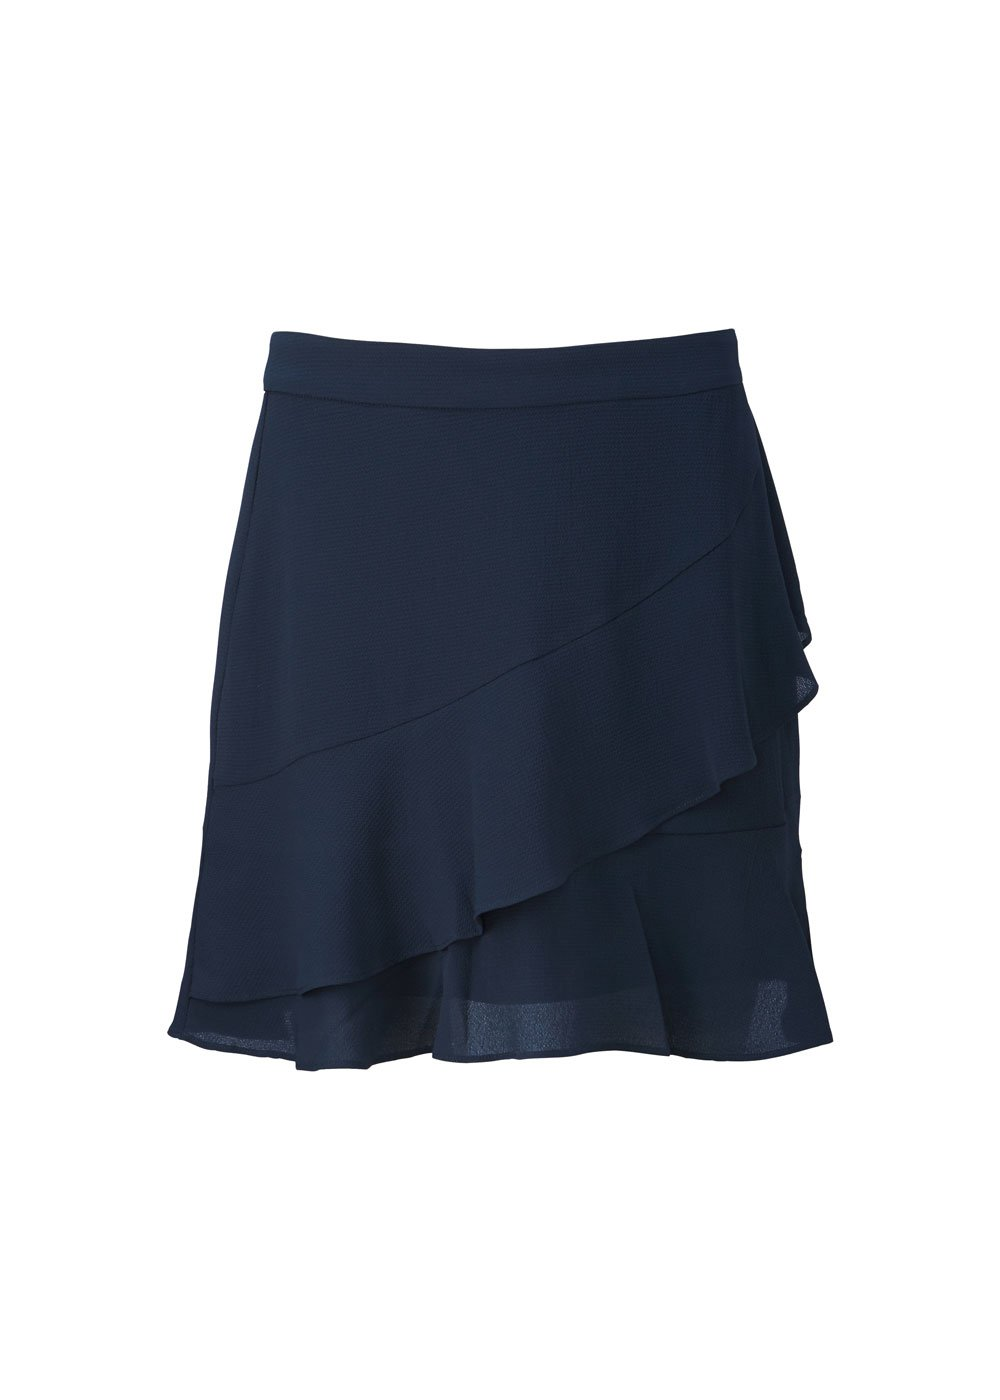 Gallery Skirt - Navy Sky